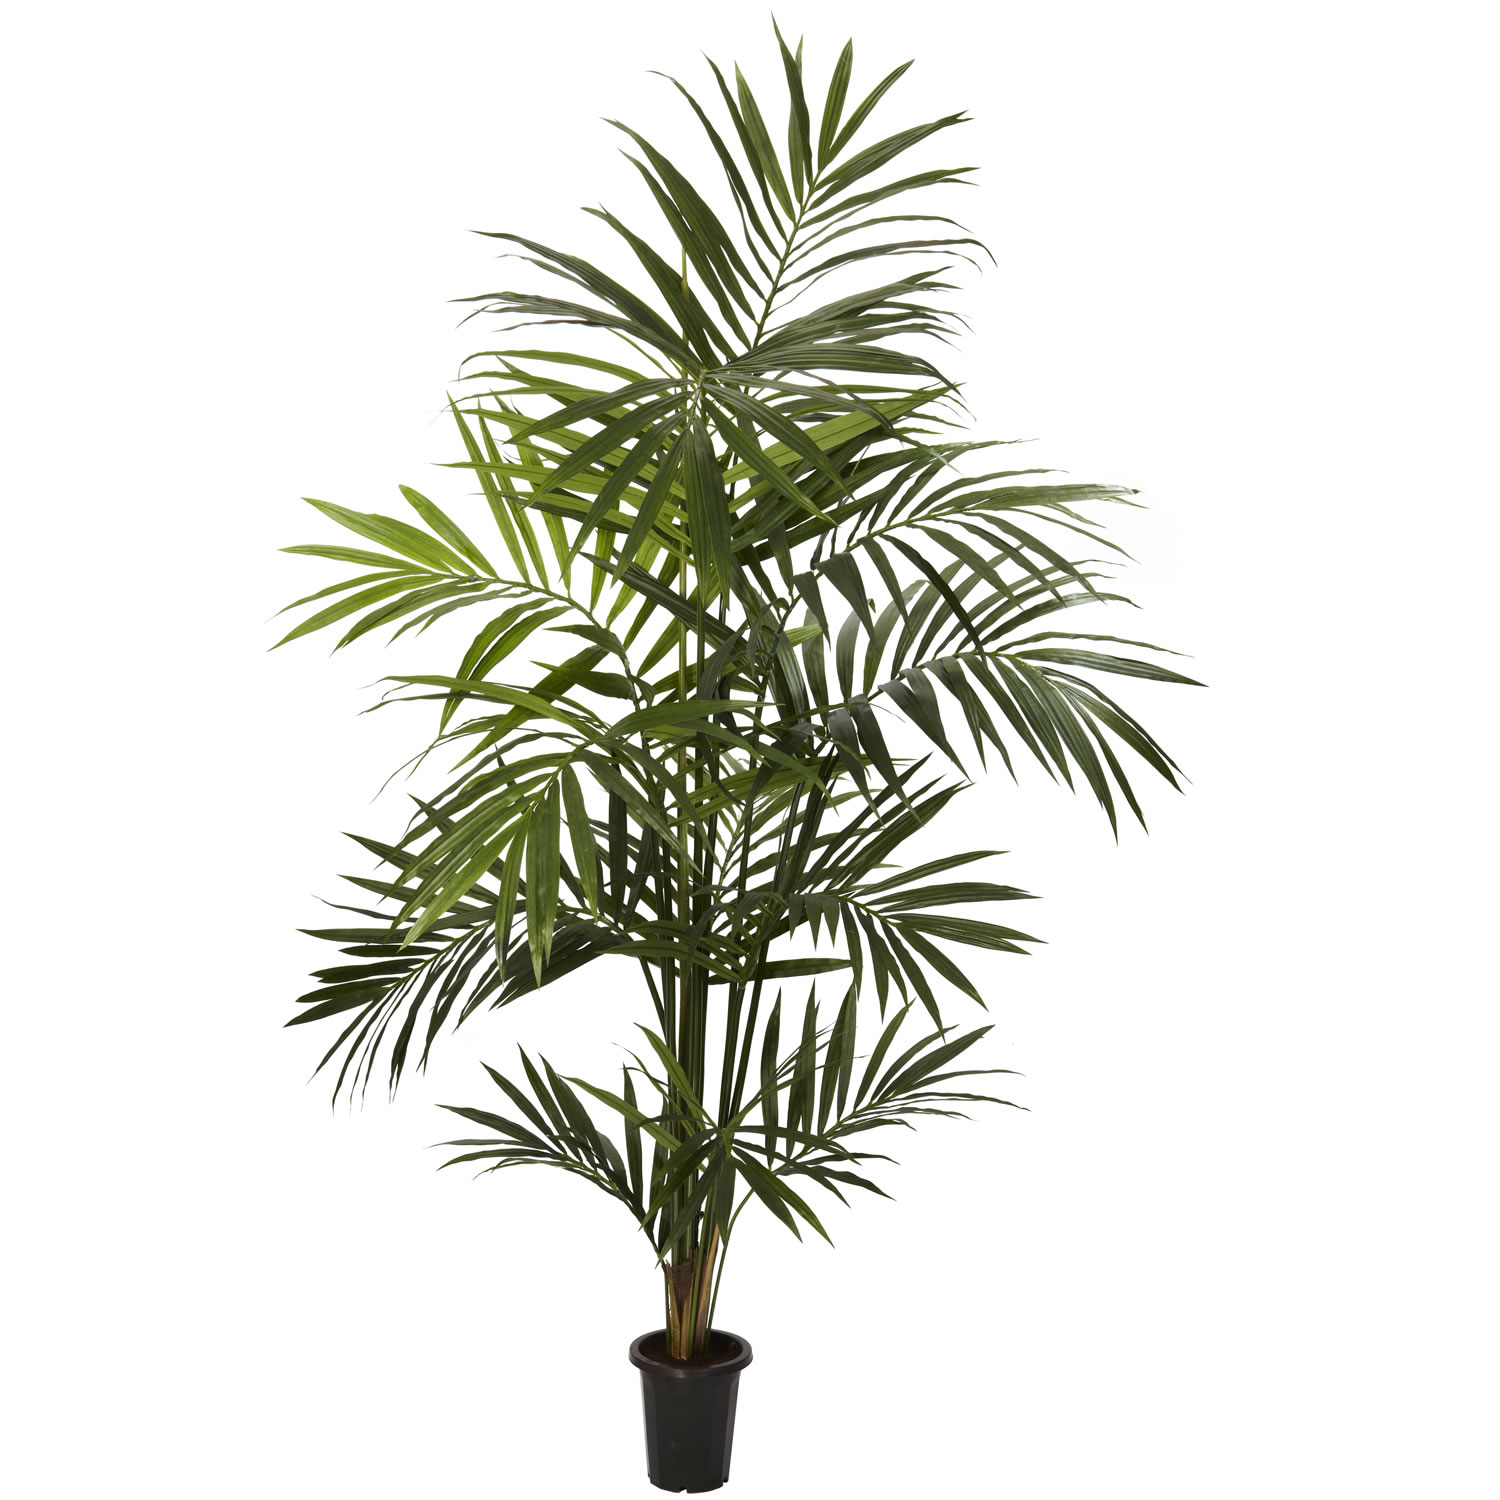 7 foot kentia palm tree potted 5335. Black Bedroom Furniture Sets. Home Design Ideas